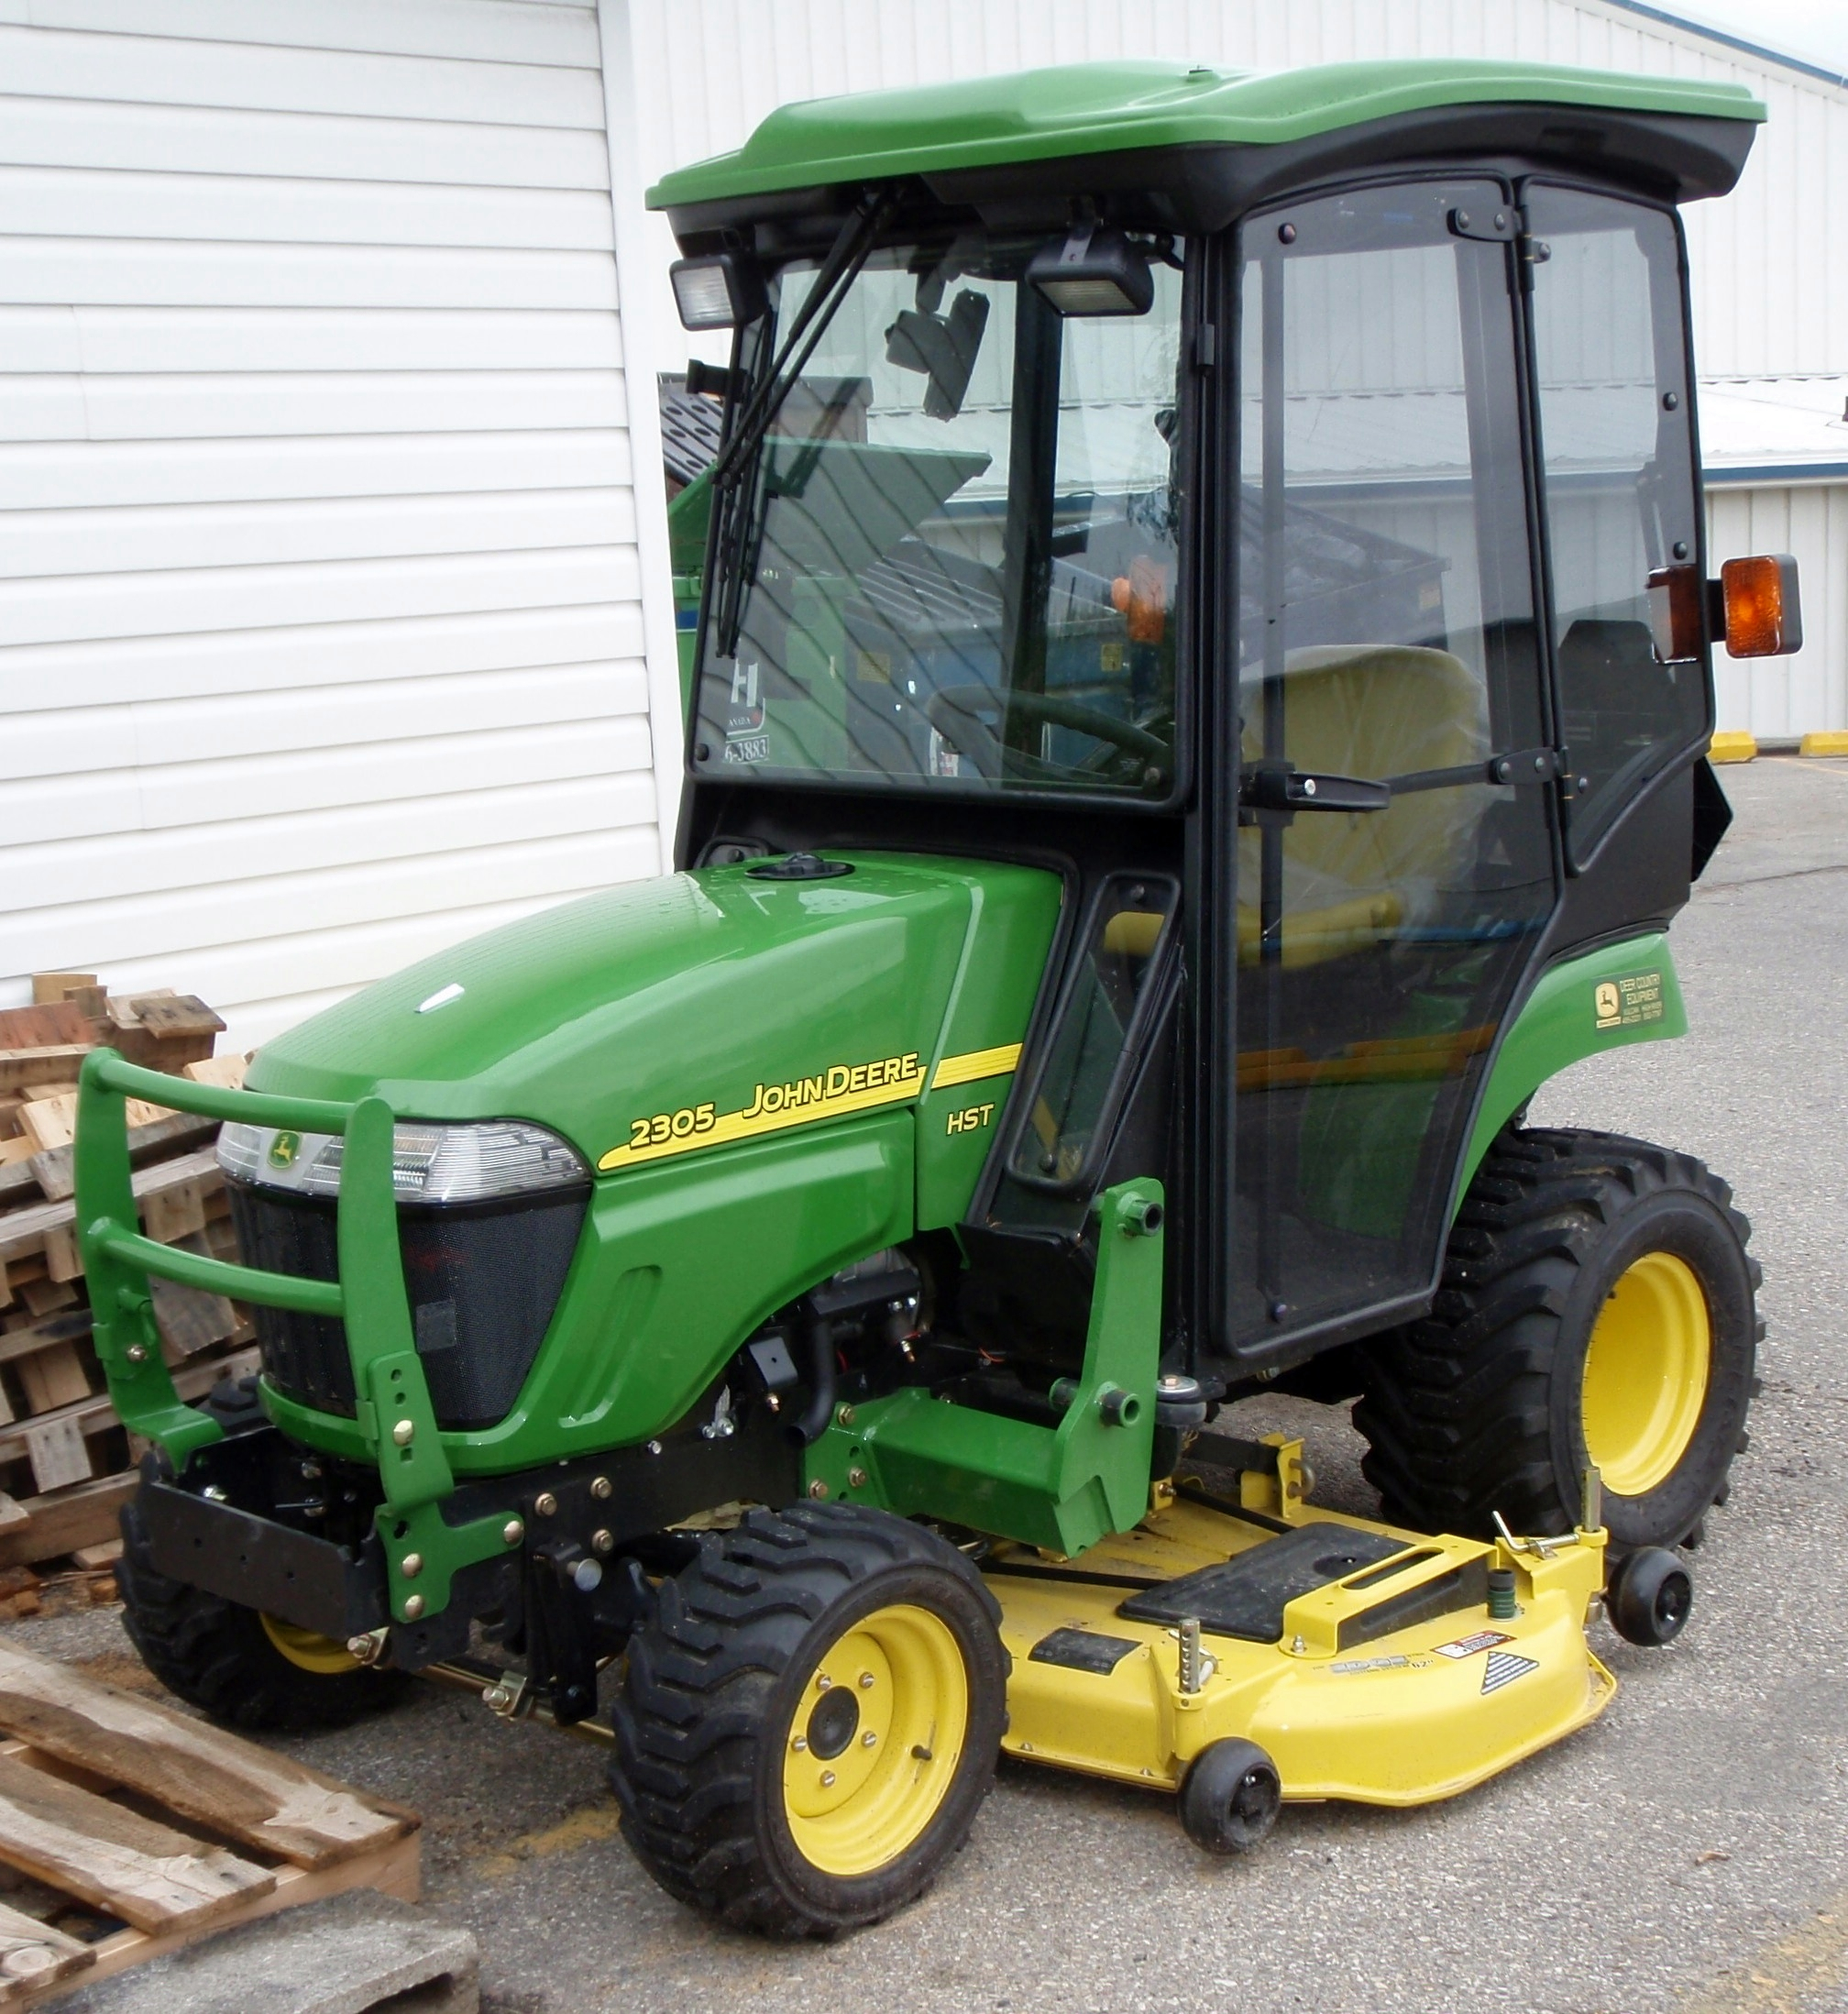 Wiring Diagram For John Deere 650 Tractor : Wiring diagram for john deere tractor diagrams